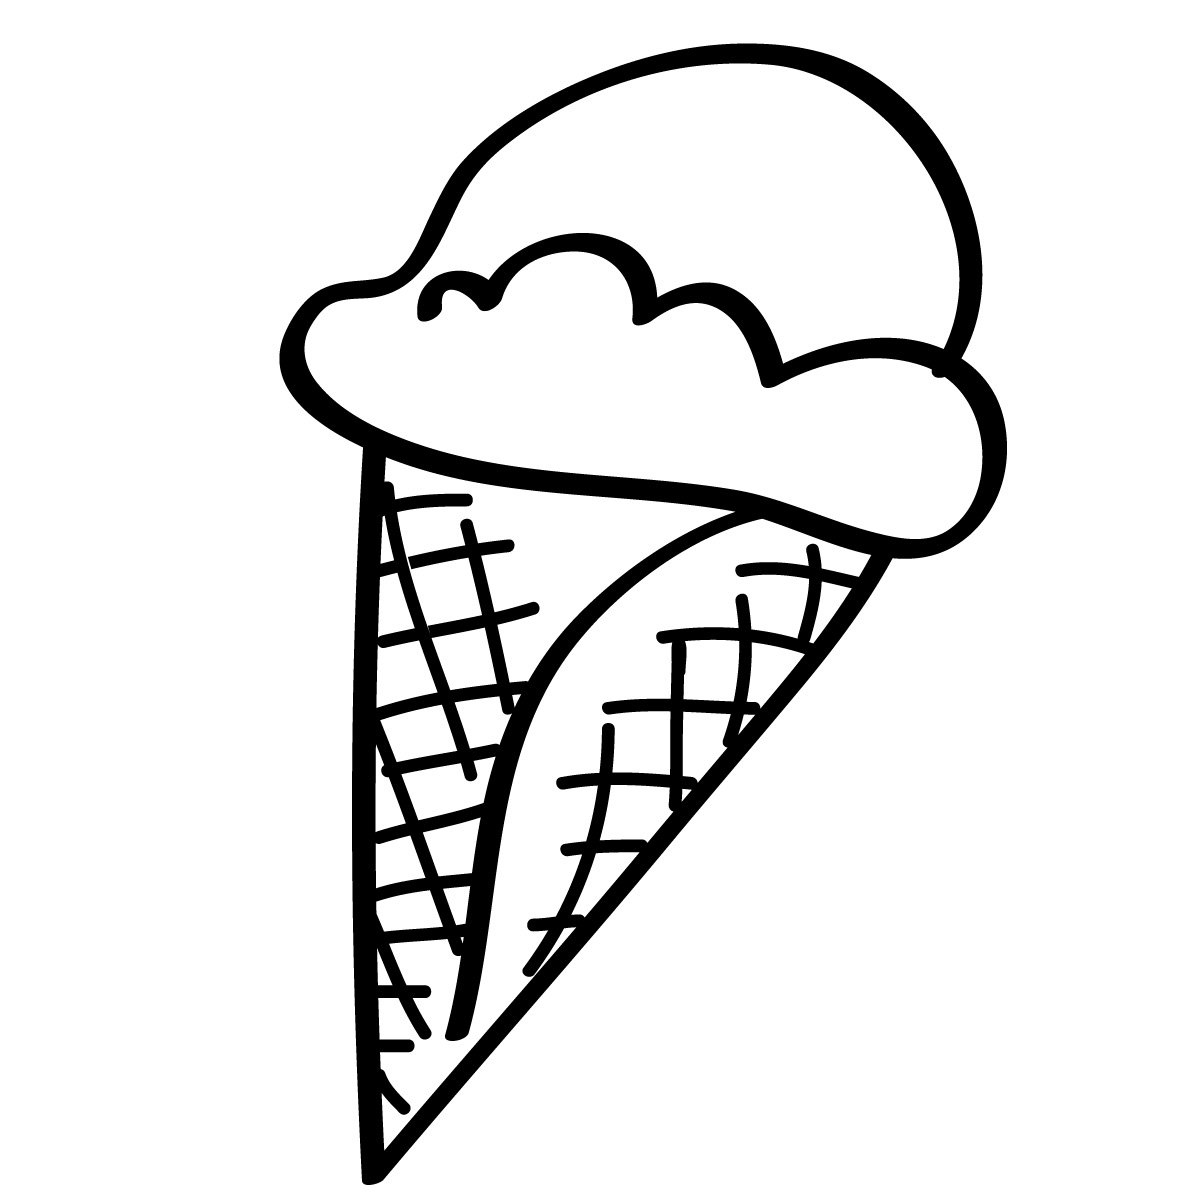 Ice cream clip art ice cream clipart fans 4.